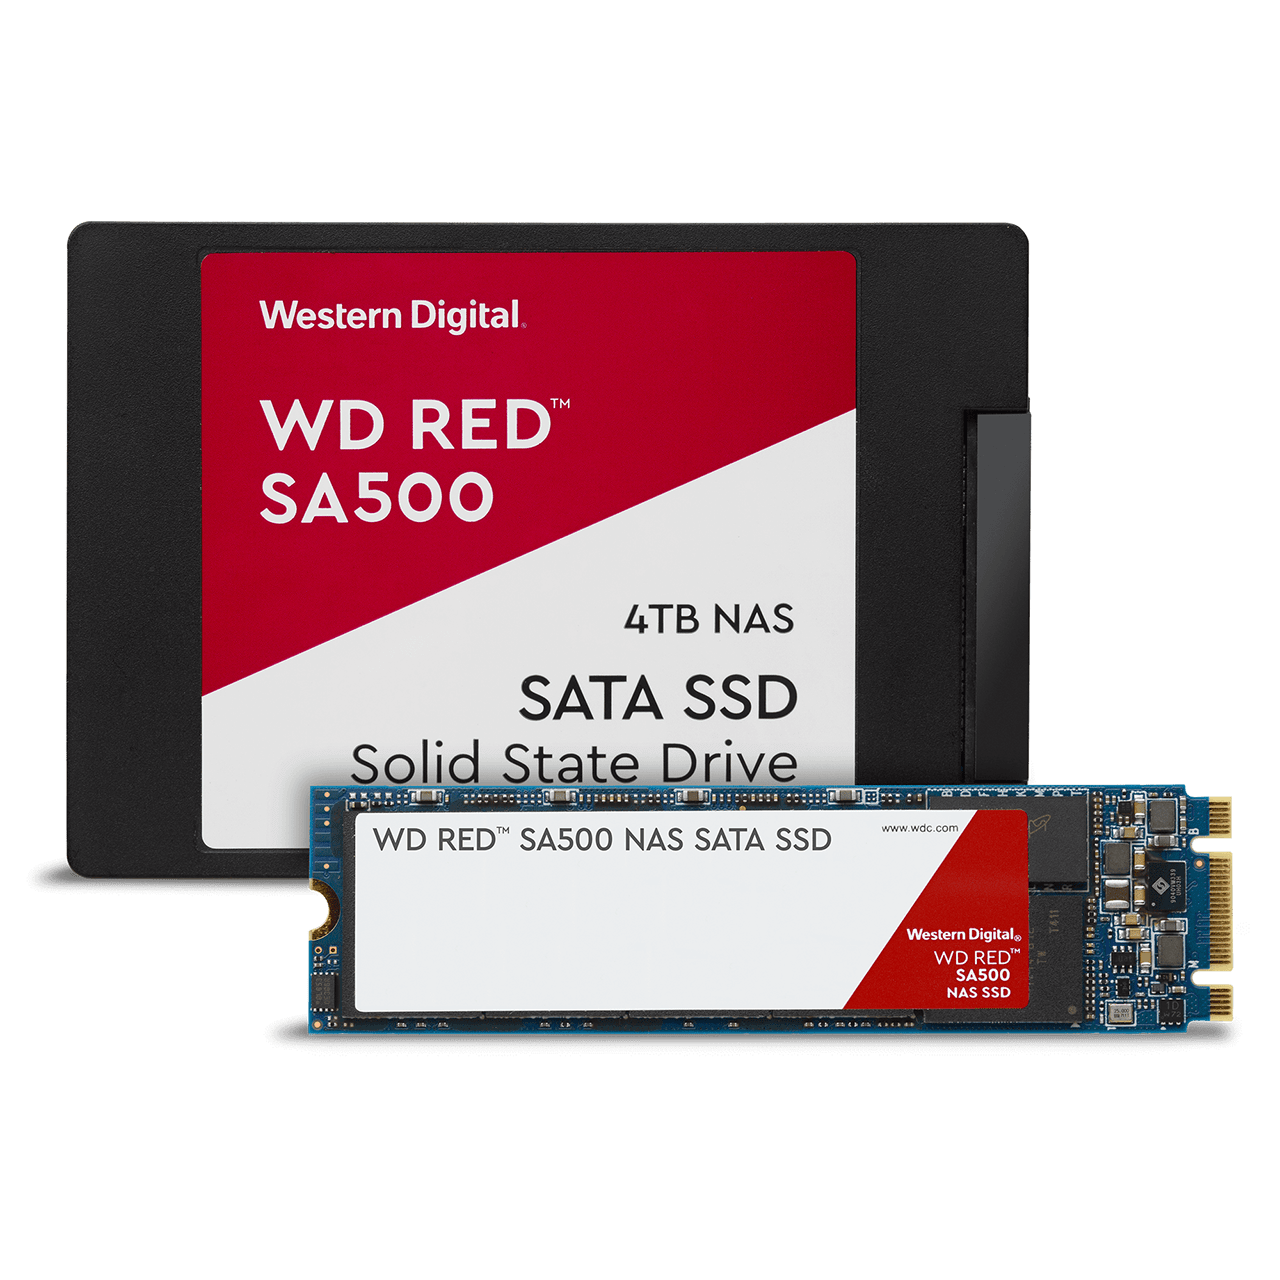 product-hero-image-wd-red-ssd-western-dijital-ana